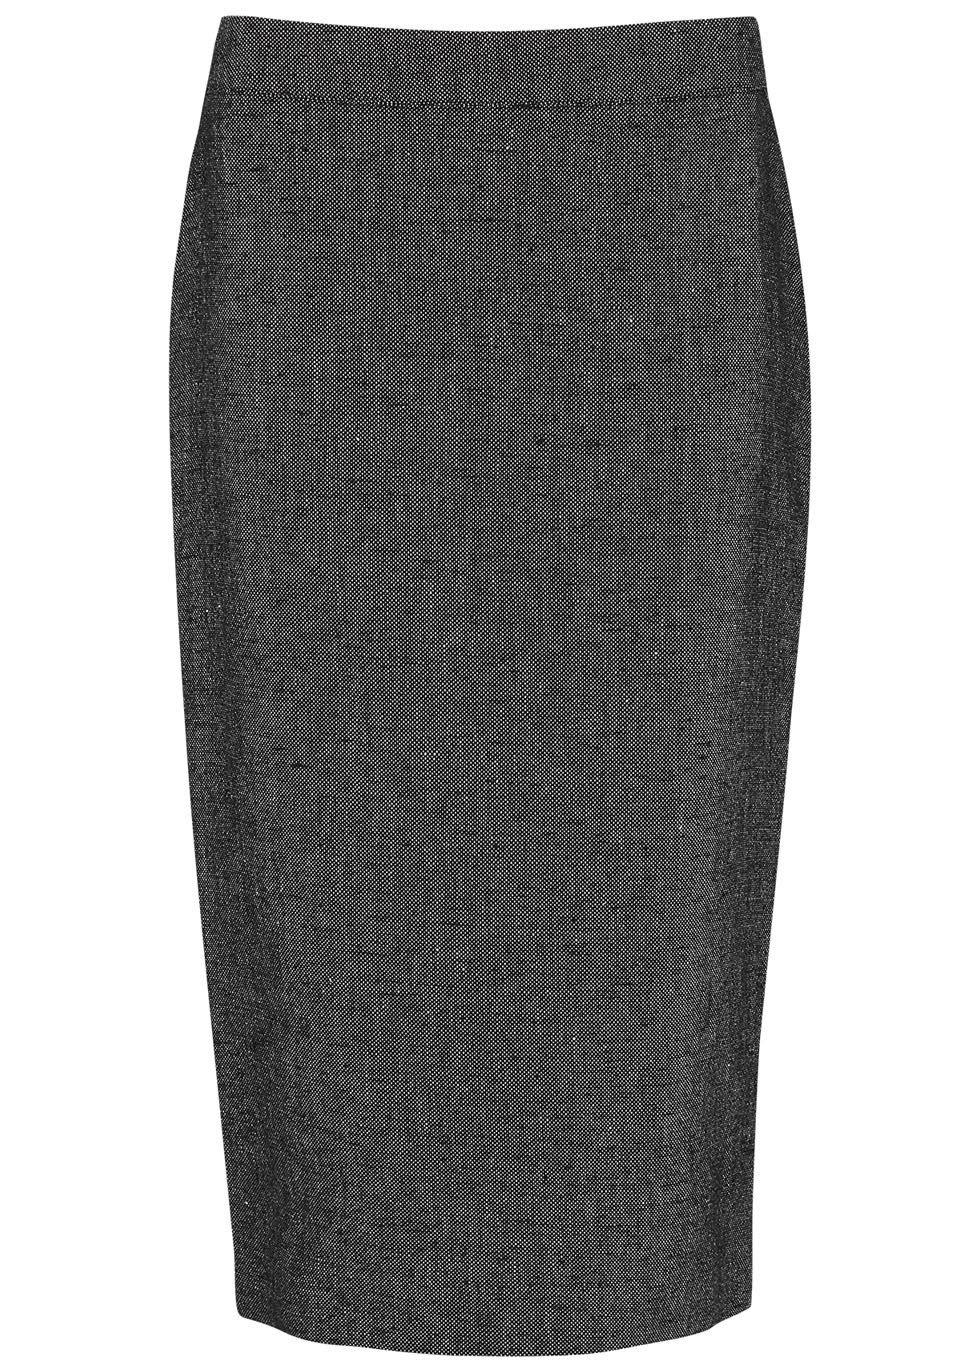 Black Linen And Crepe Pencil Skirt - pattern: plain; style: pencil; fit: tailored/fitted; waist: mid/regular rise; predominant colour: charcoal; occasions: work; length: on the knee; fibres: linen - mix; texture group: crepes; pattern type: fabric; season: s/s 2016; wardrobe: basic